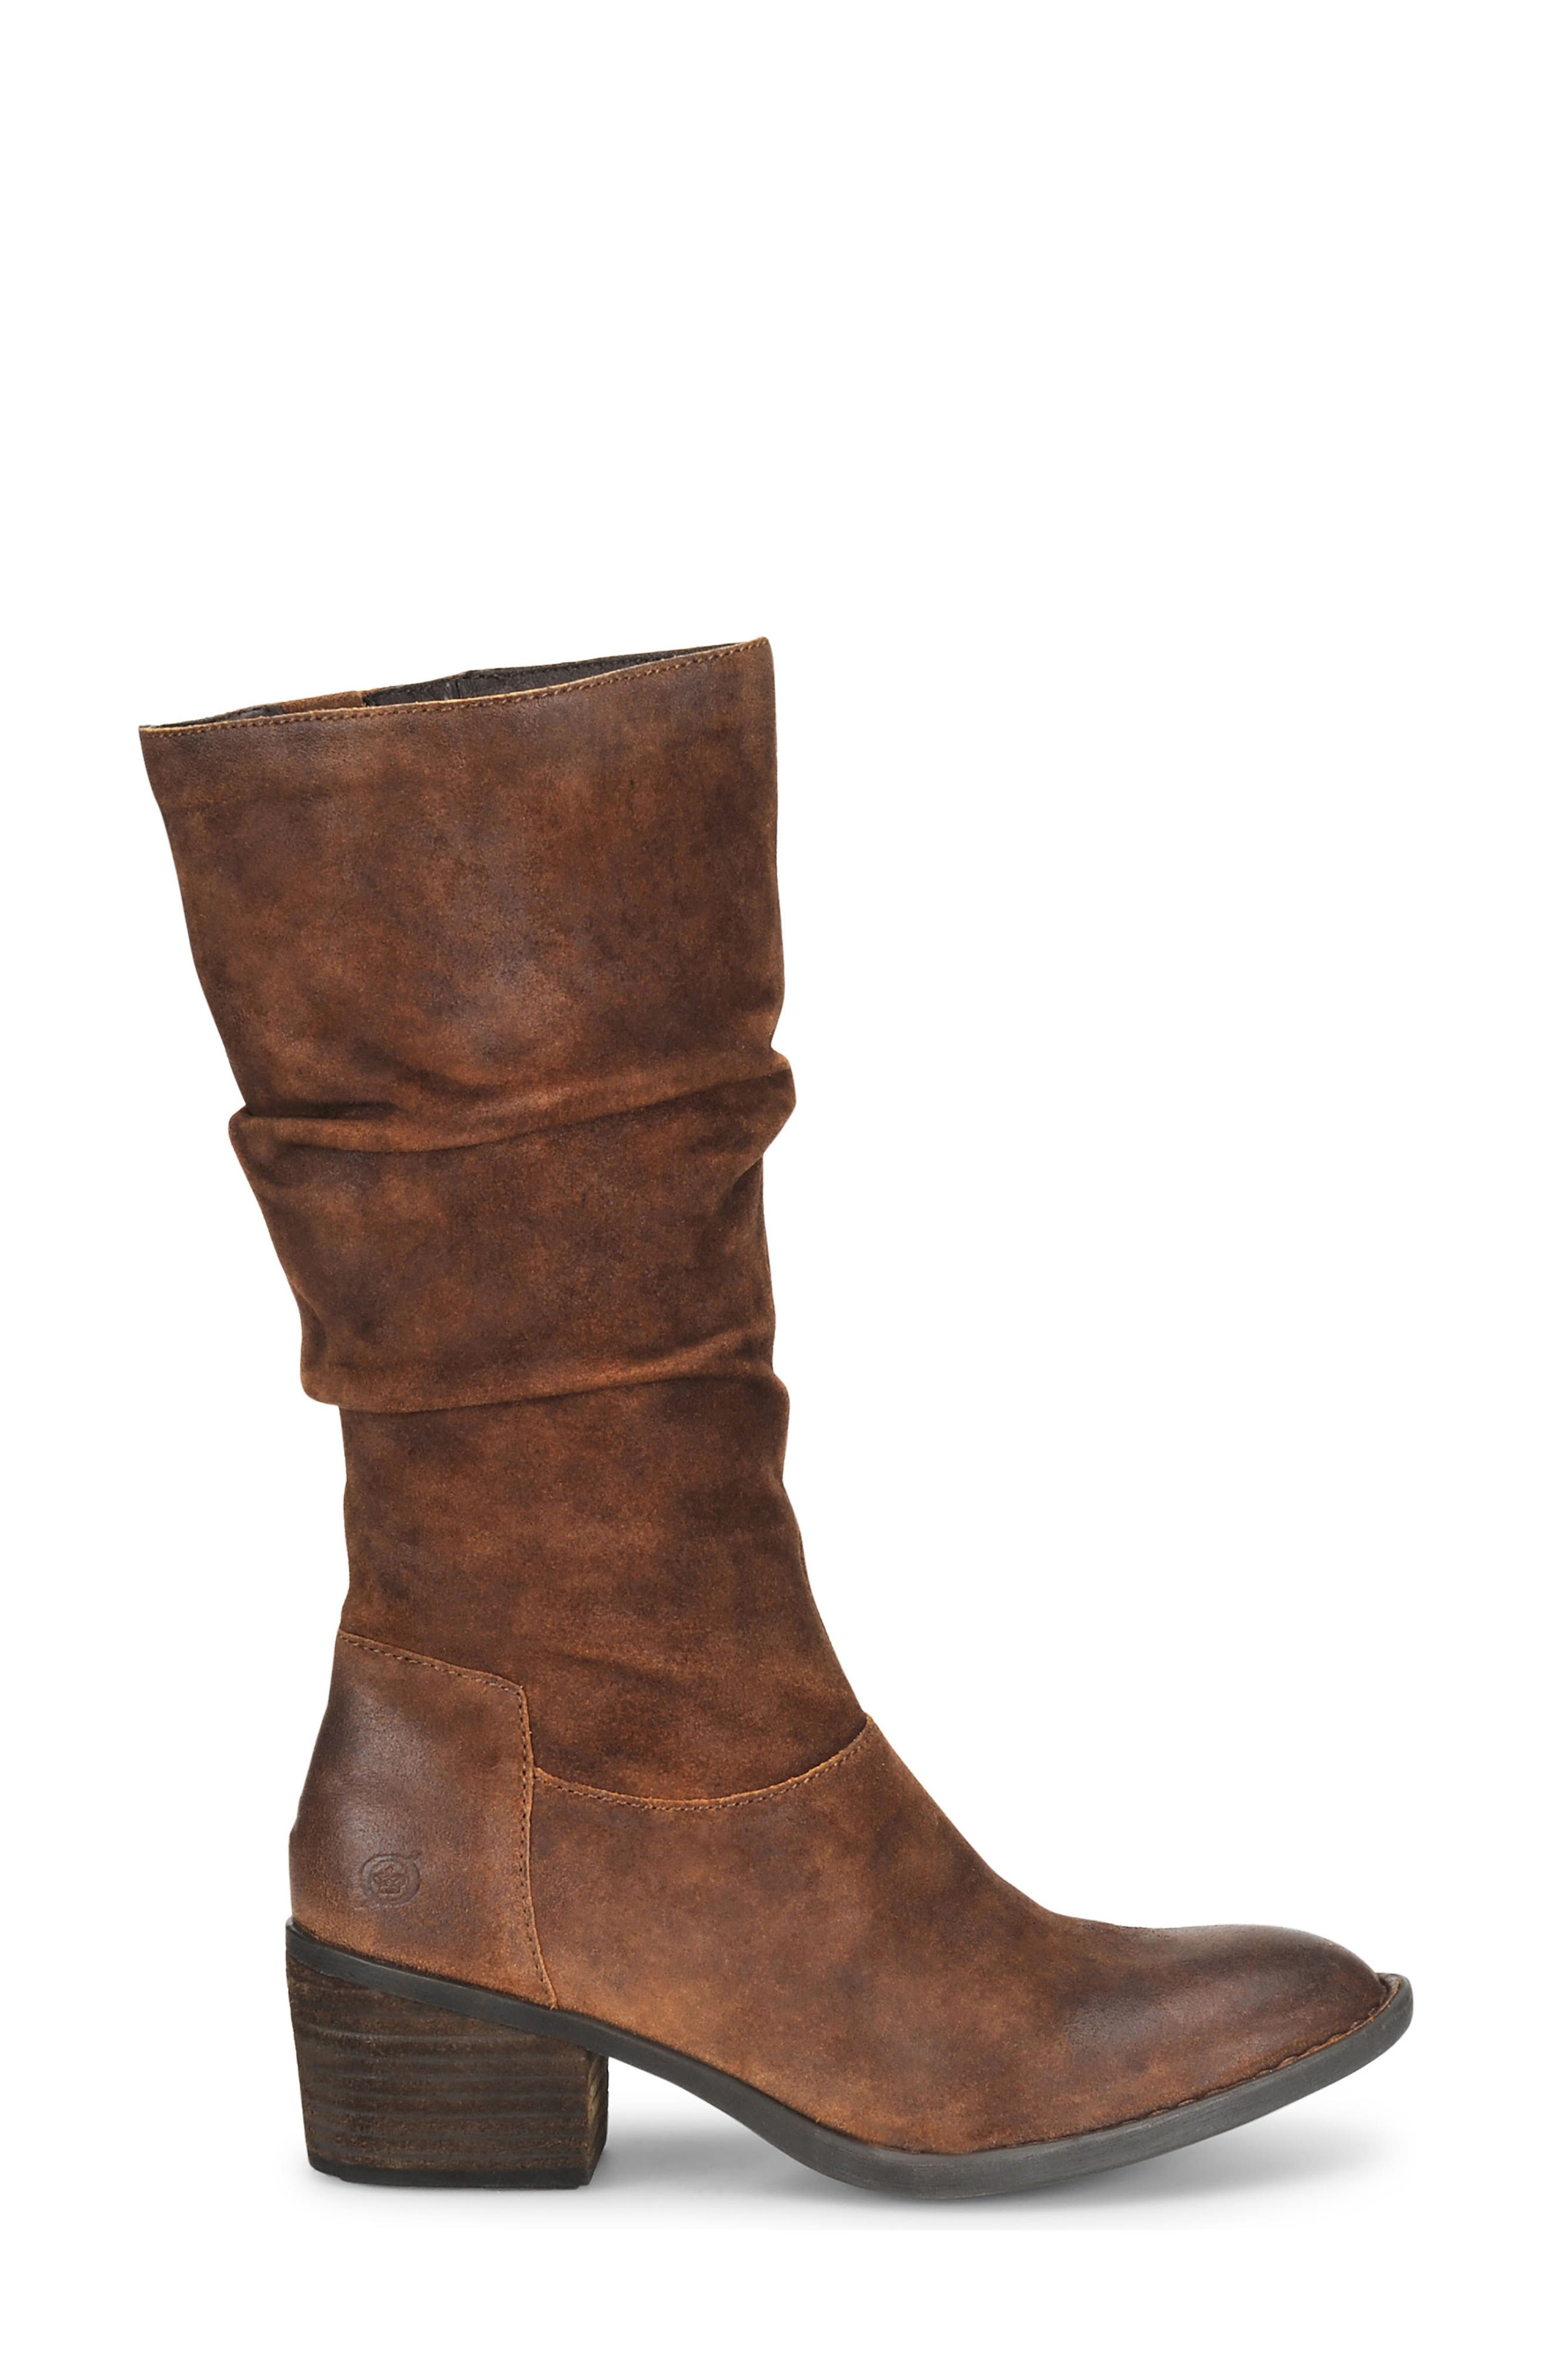 Peavy Slouch Boot,                             Alternate thumbnail 3, color,                             Rust Distressed Leather